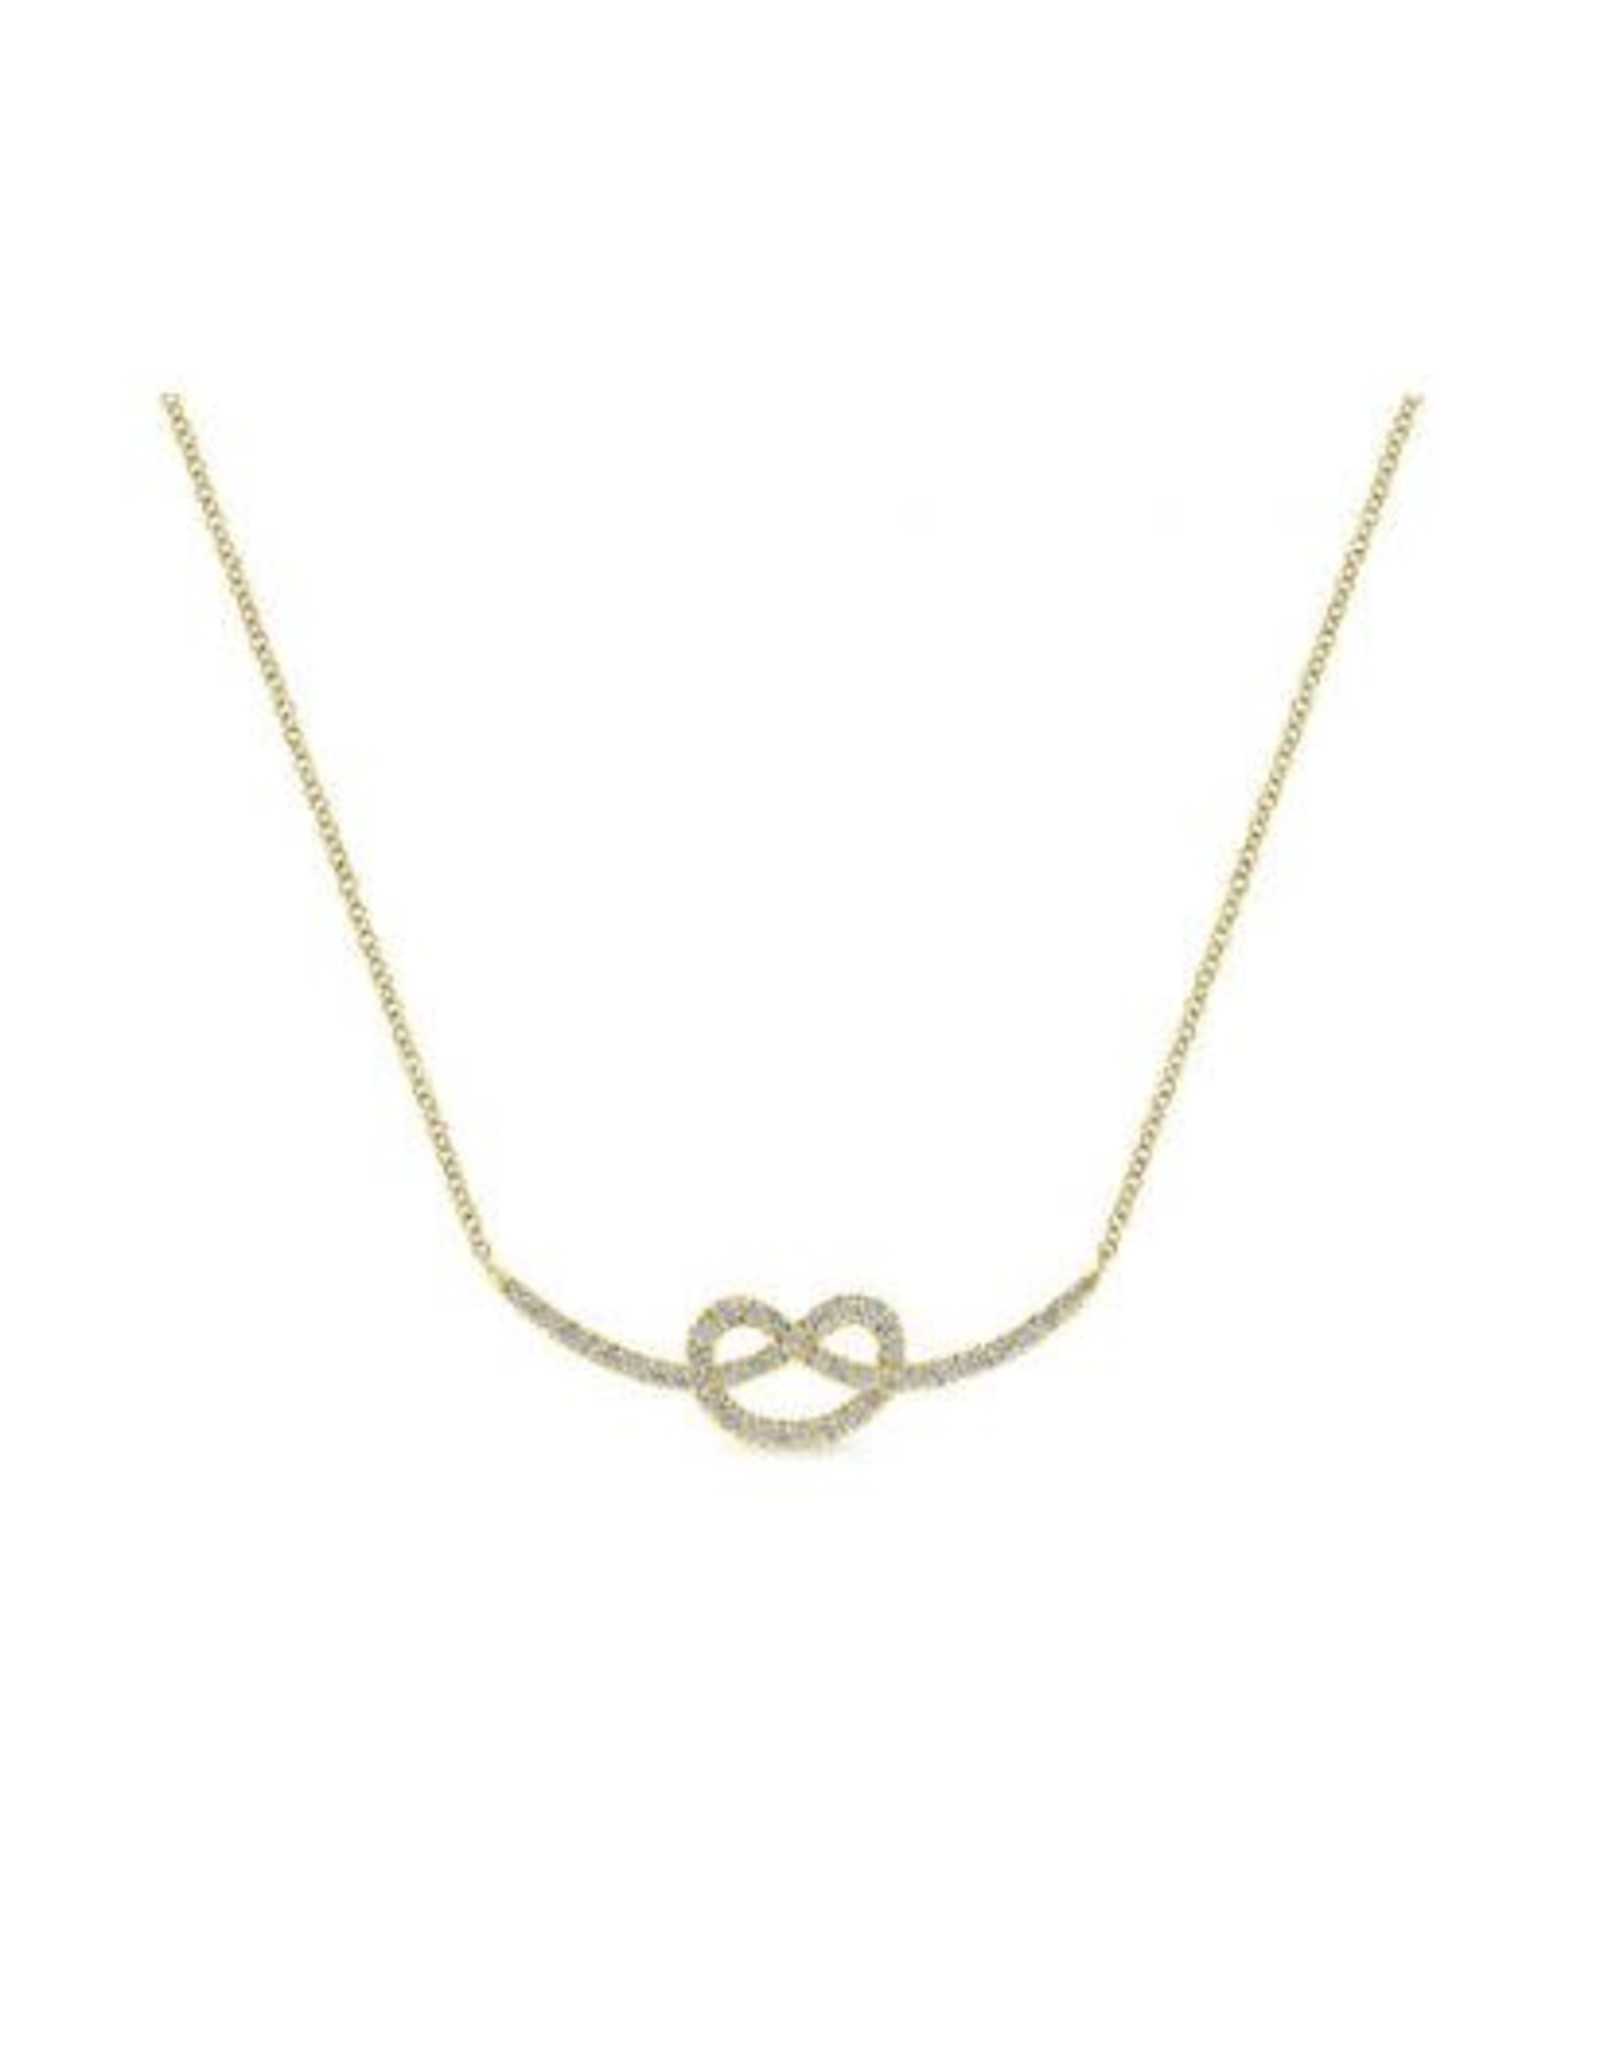 14K Yellow Gold Eternal Love Knot Necklace, D: 0.40ct